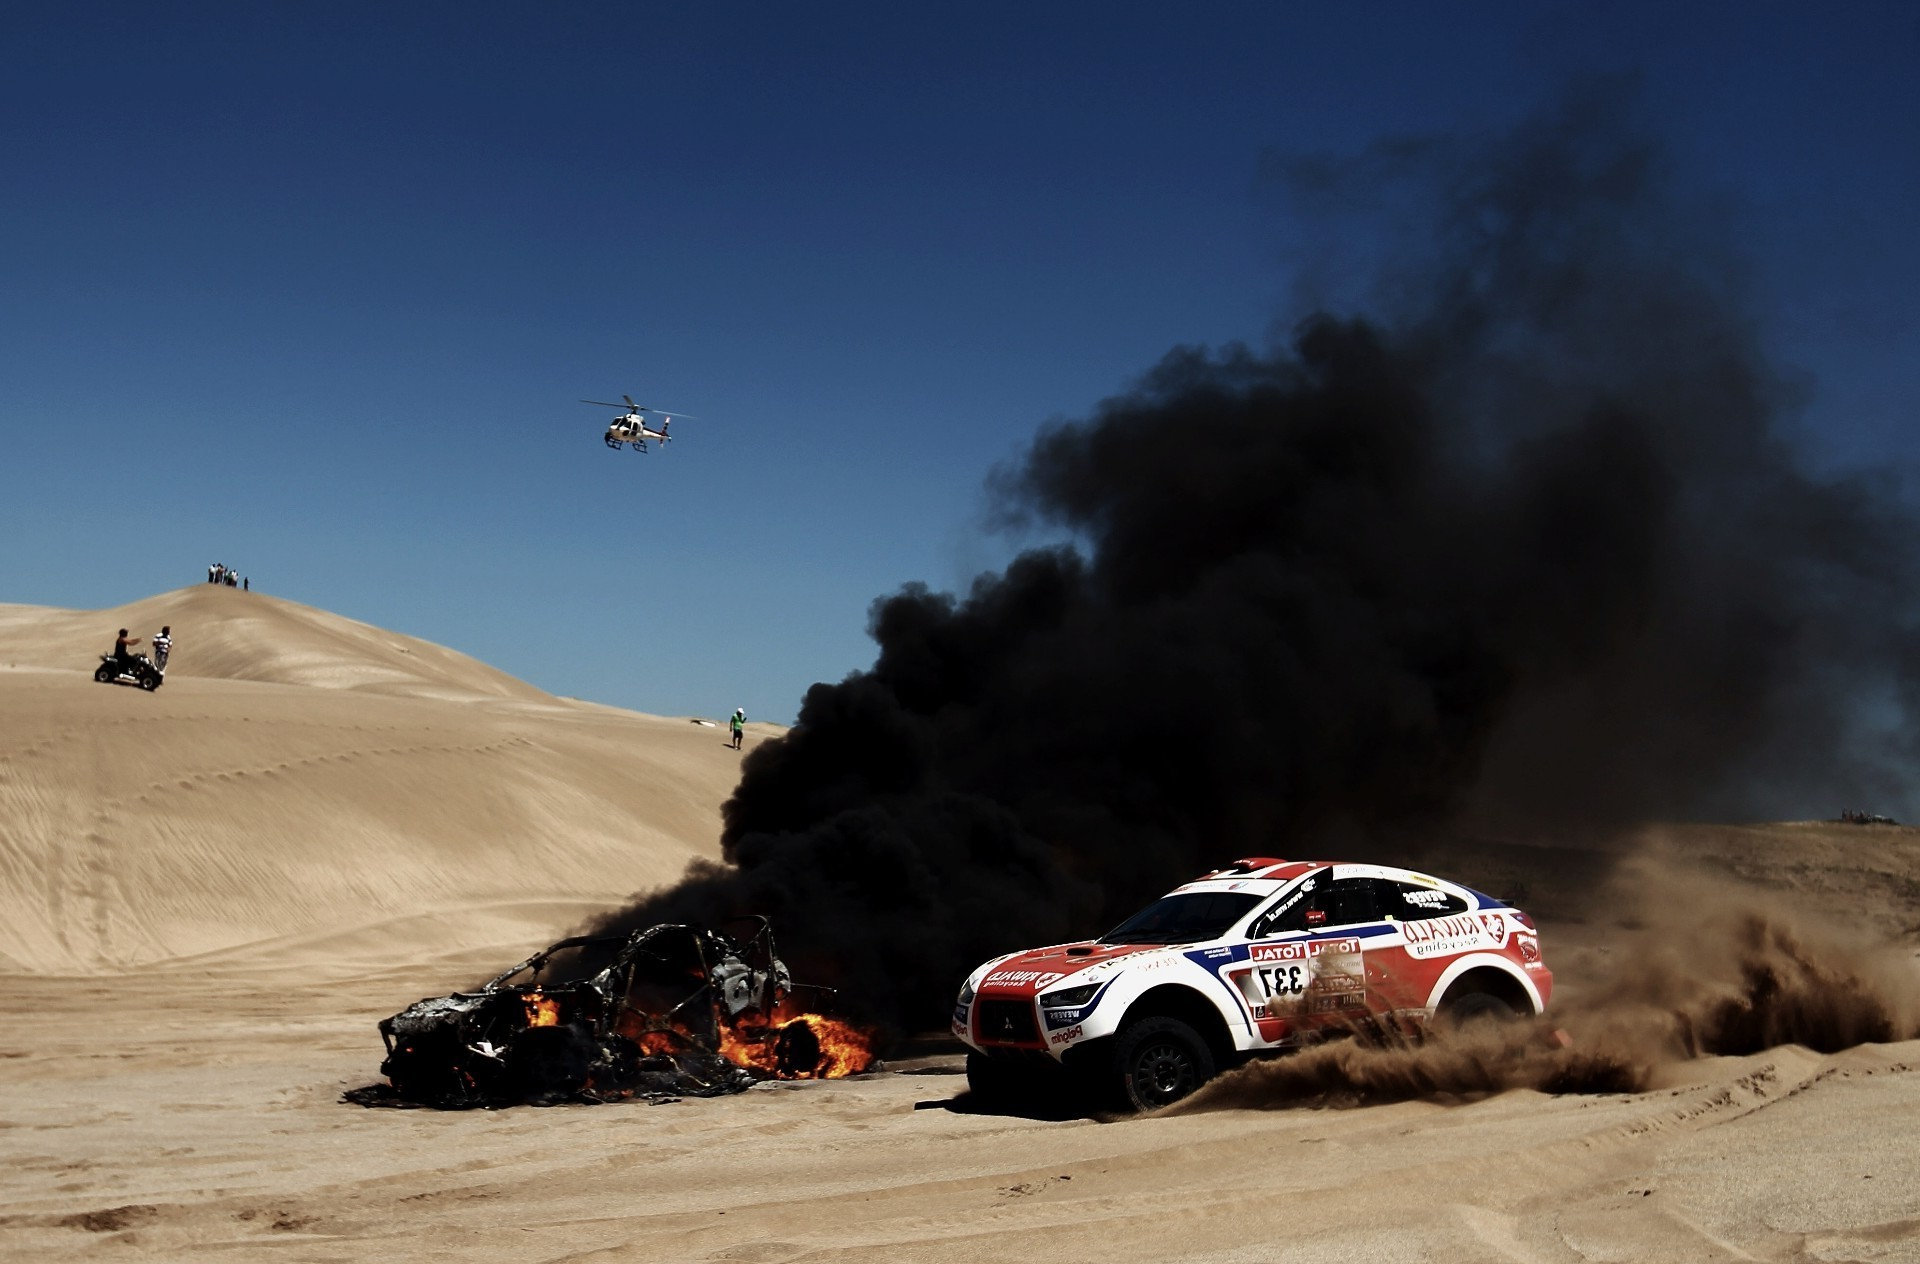 The accident in the desert while racing the Paris-Dakar